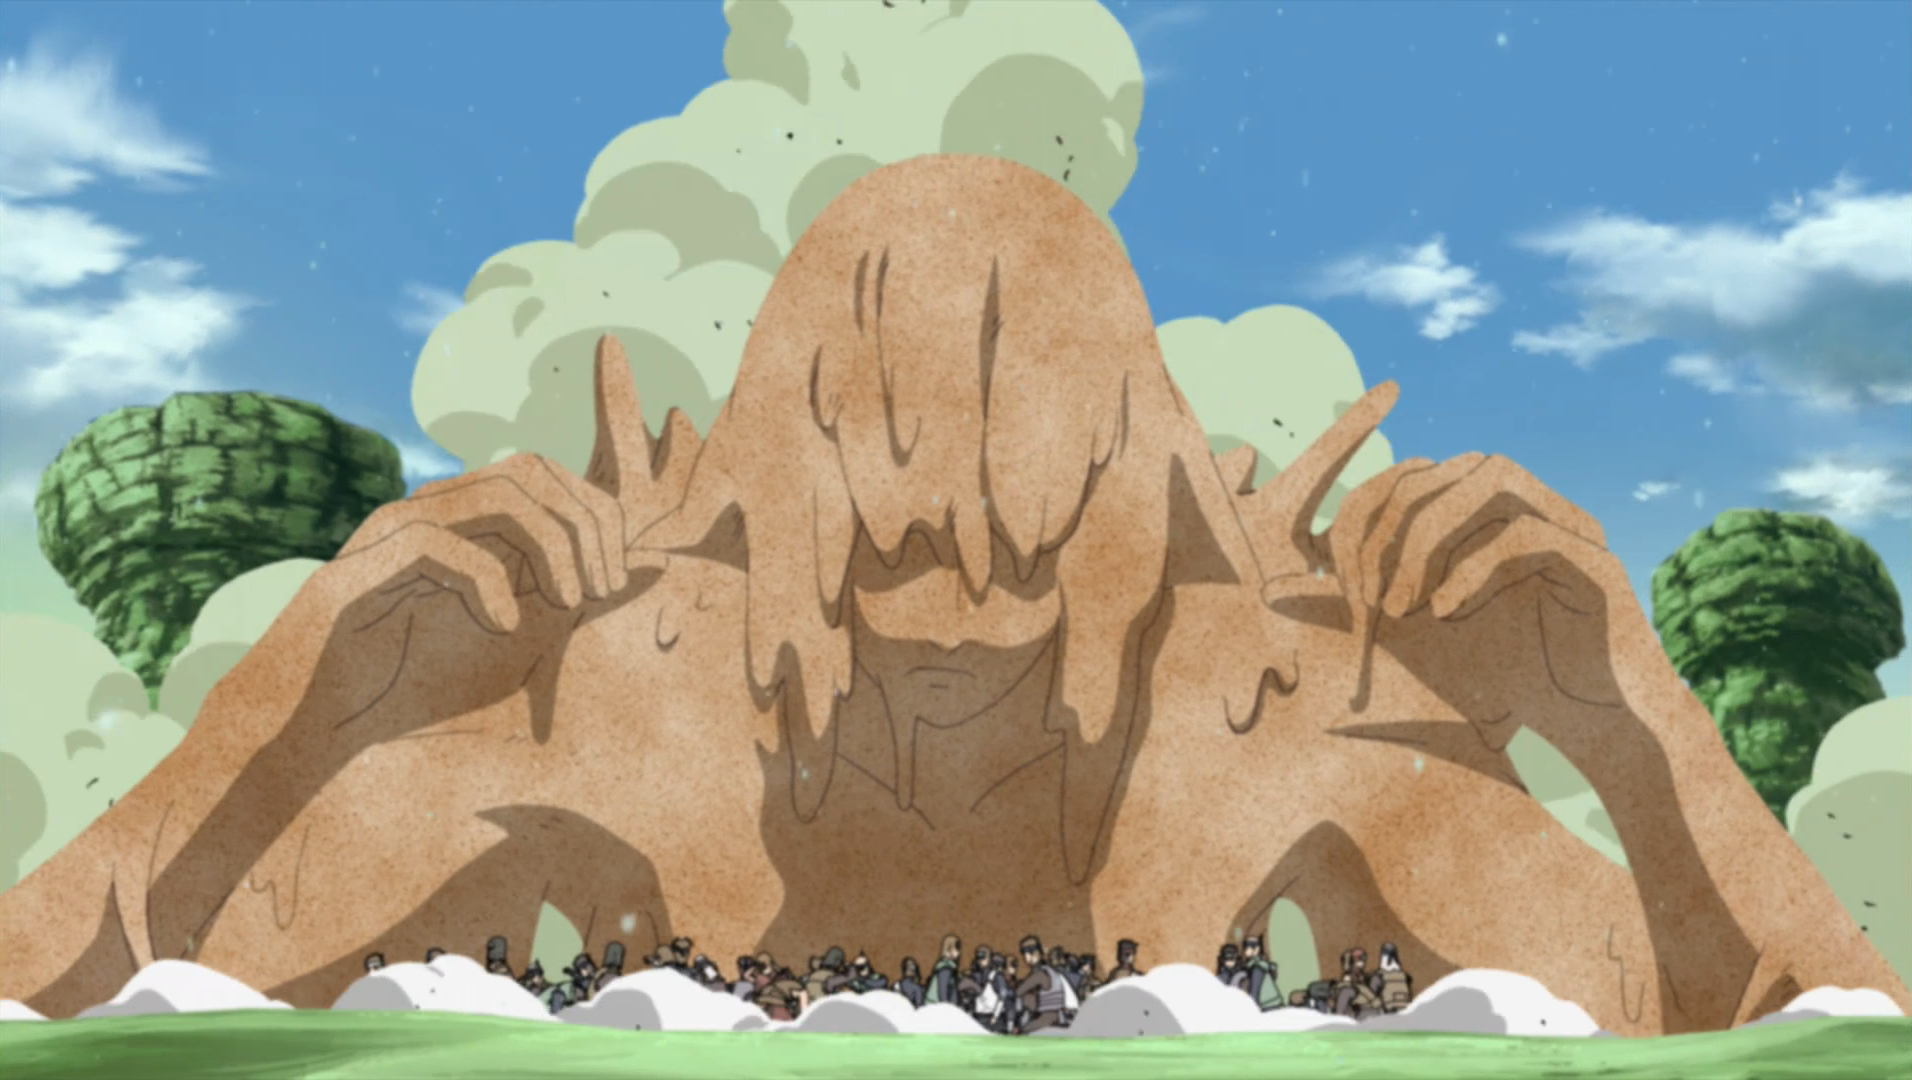 http://images.wikia.com/naruto/images/6/61/Gaara%27s_improved_shield.png